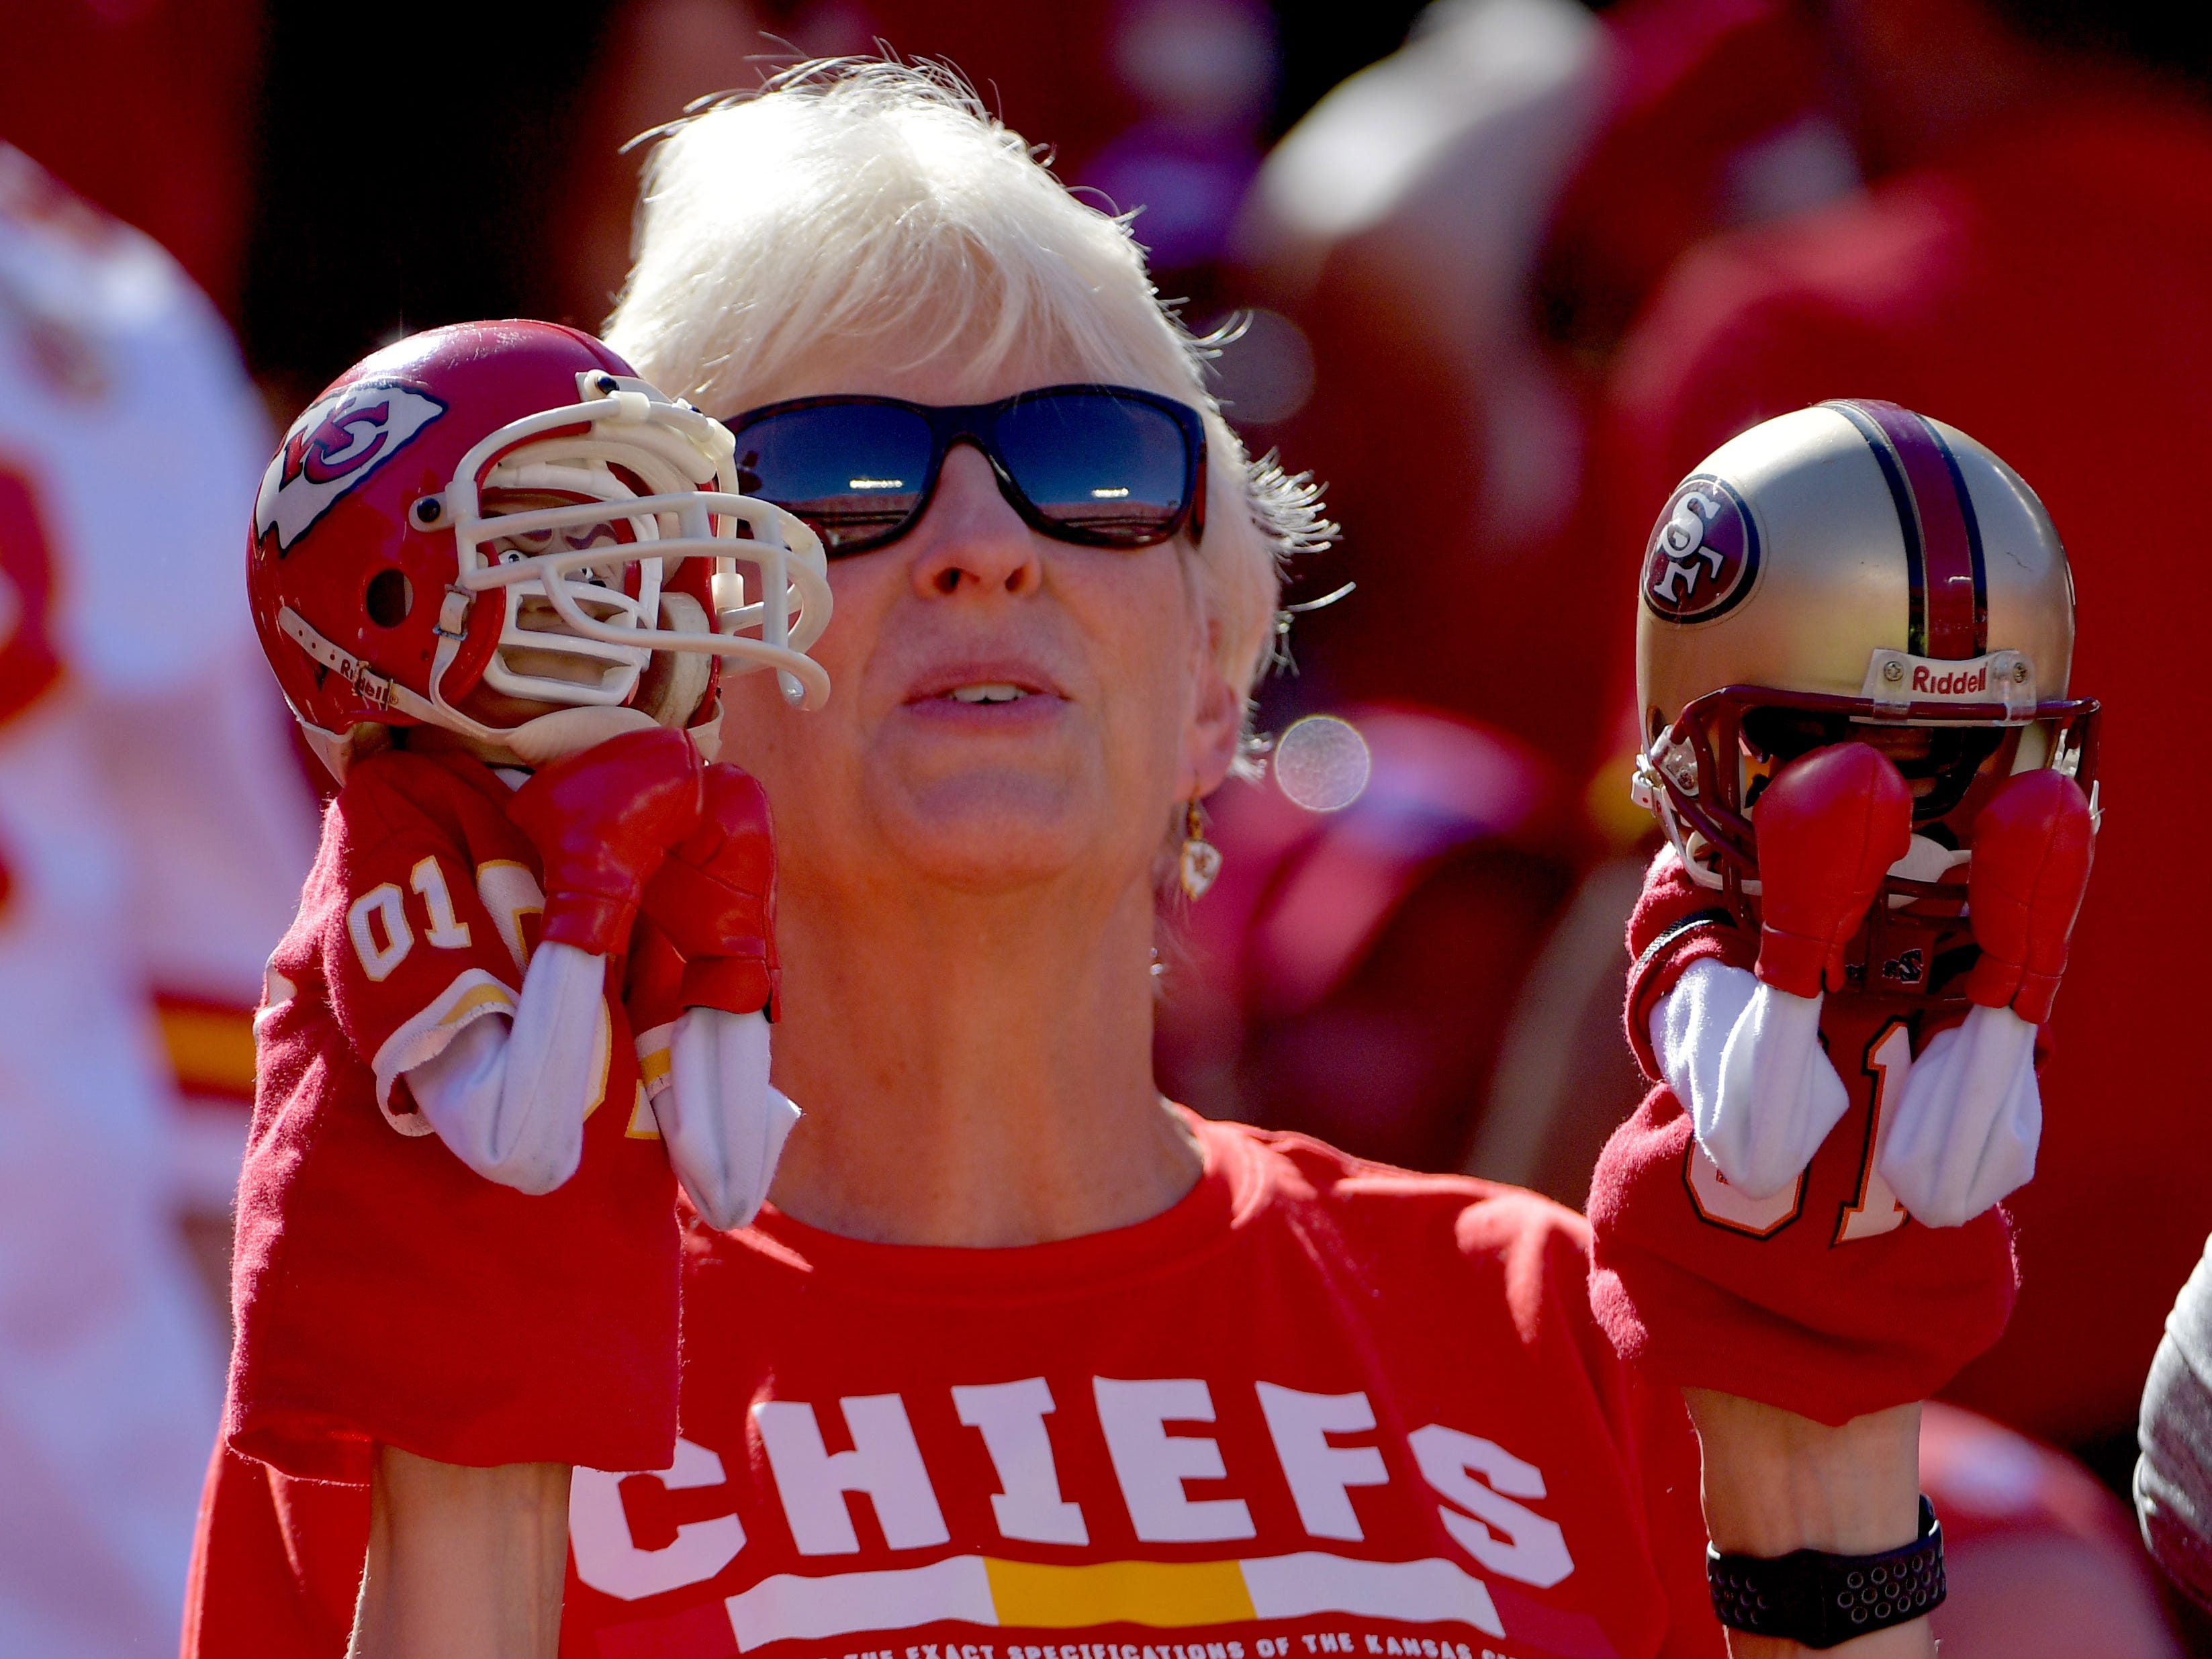 A Kansas City Chiefs fan shows her support during the second half against the San Francisco 49ers at Arrowhead Stadium.